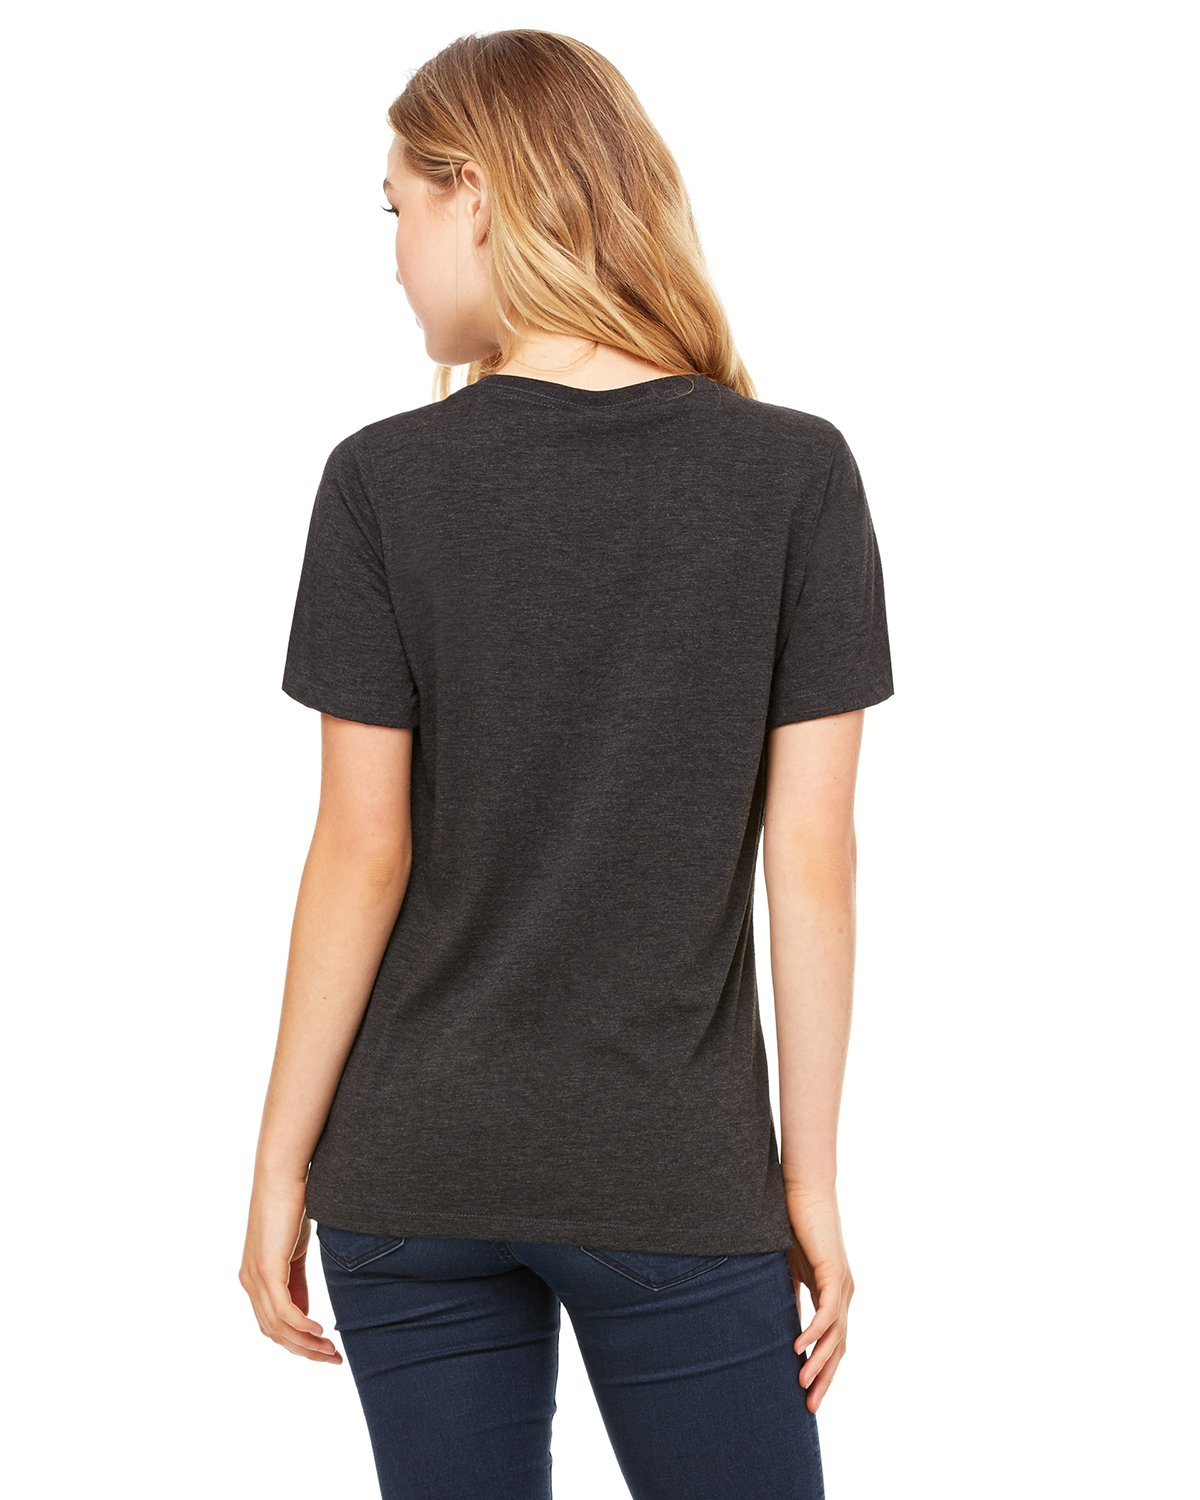 Bella Canvas Relaxed Jersey V-Neck T-Shirt_Charcoal-Black Triblend_XX-Large